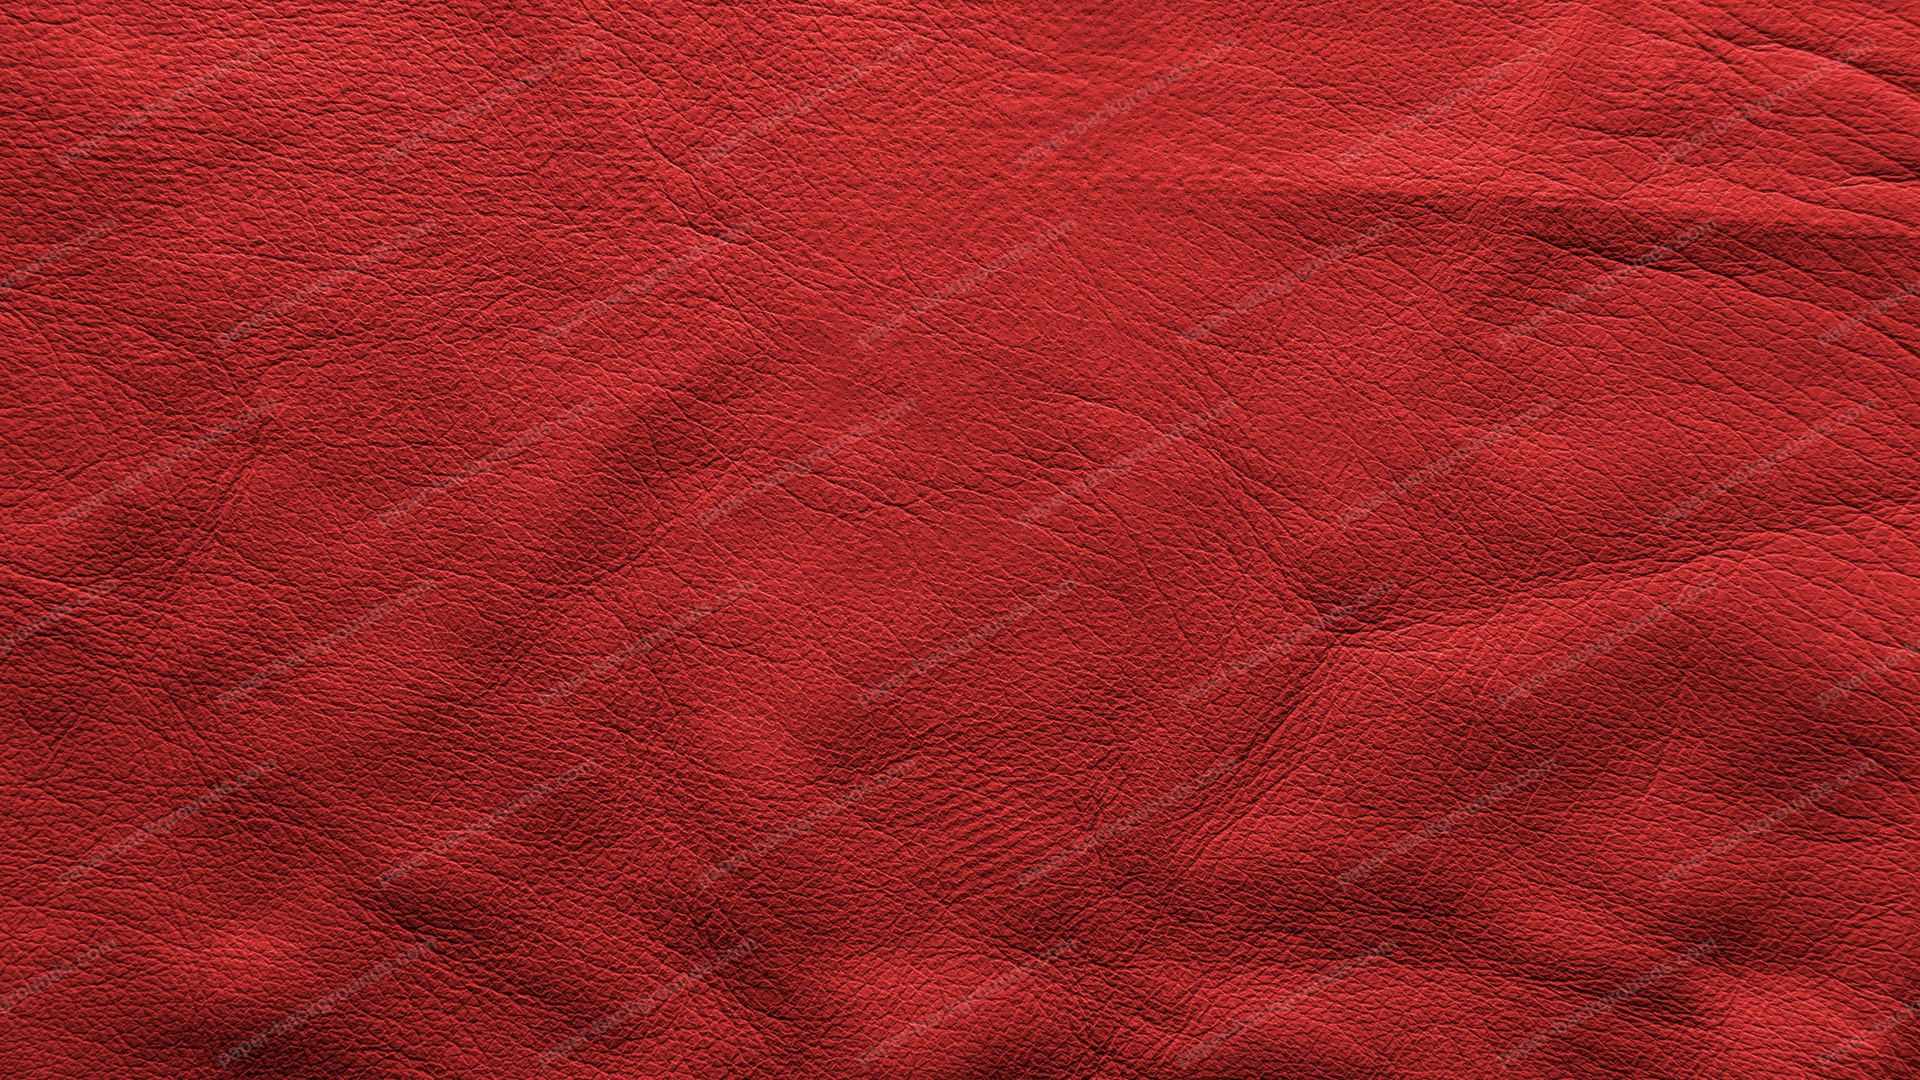 Red Vintage Soft Leather Background HD 1920 x 1080p